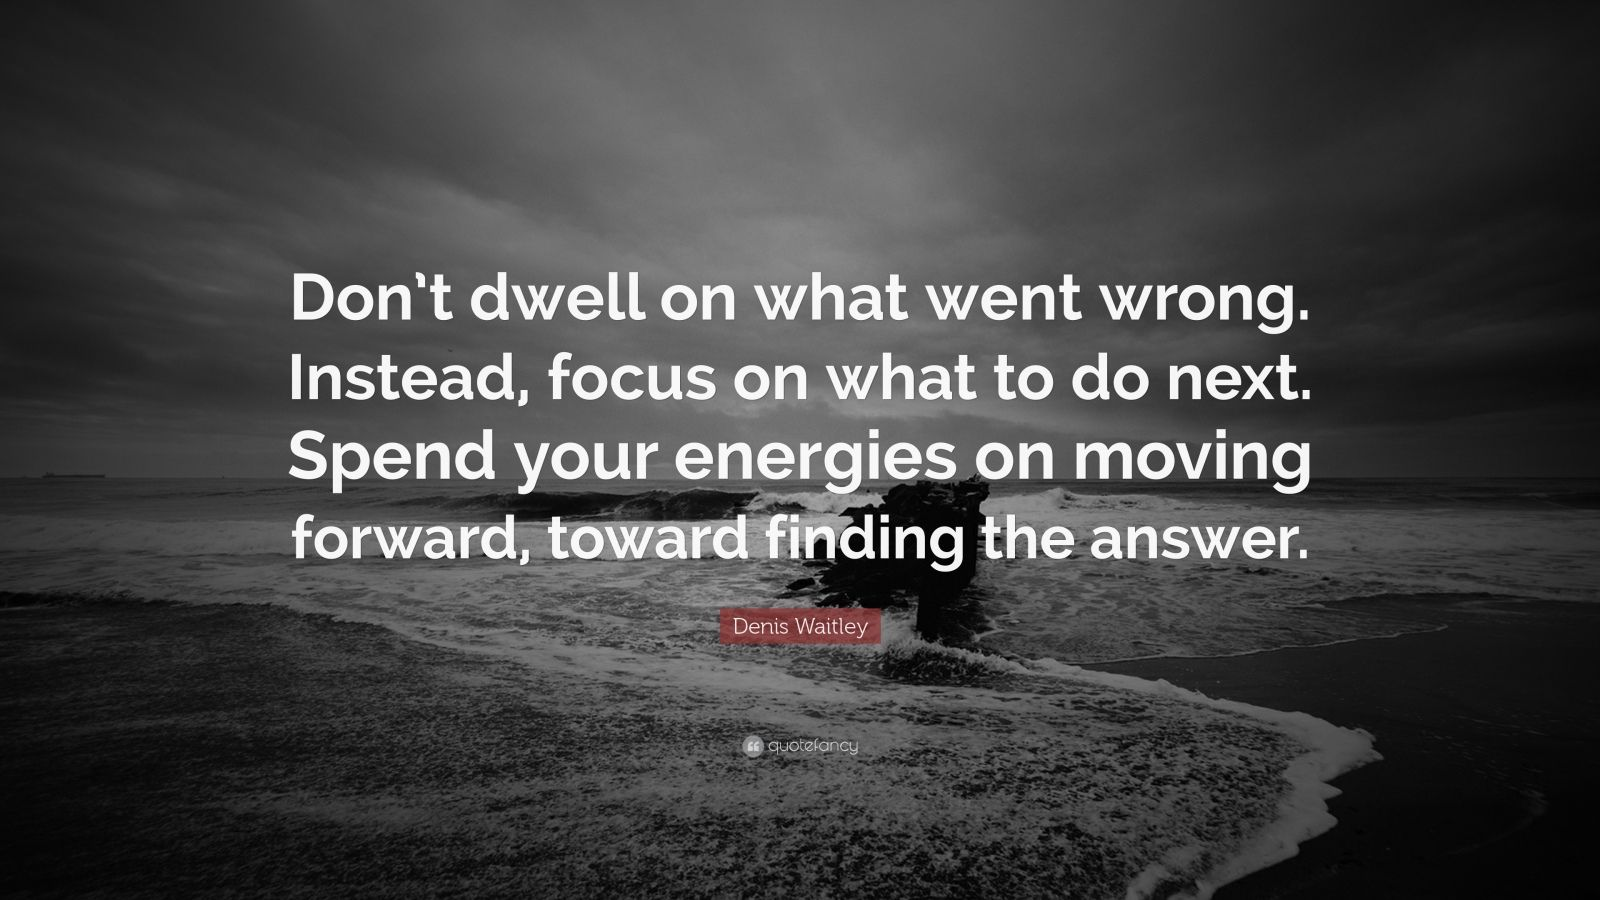 denis waitley quote   u201cdon u2019t dwell on what went wrong